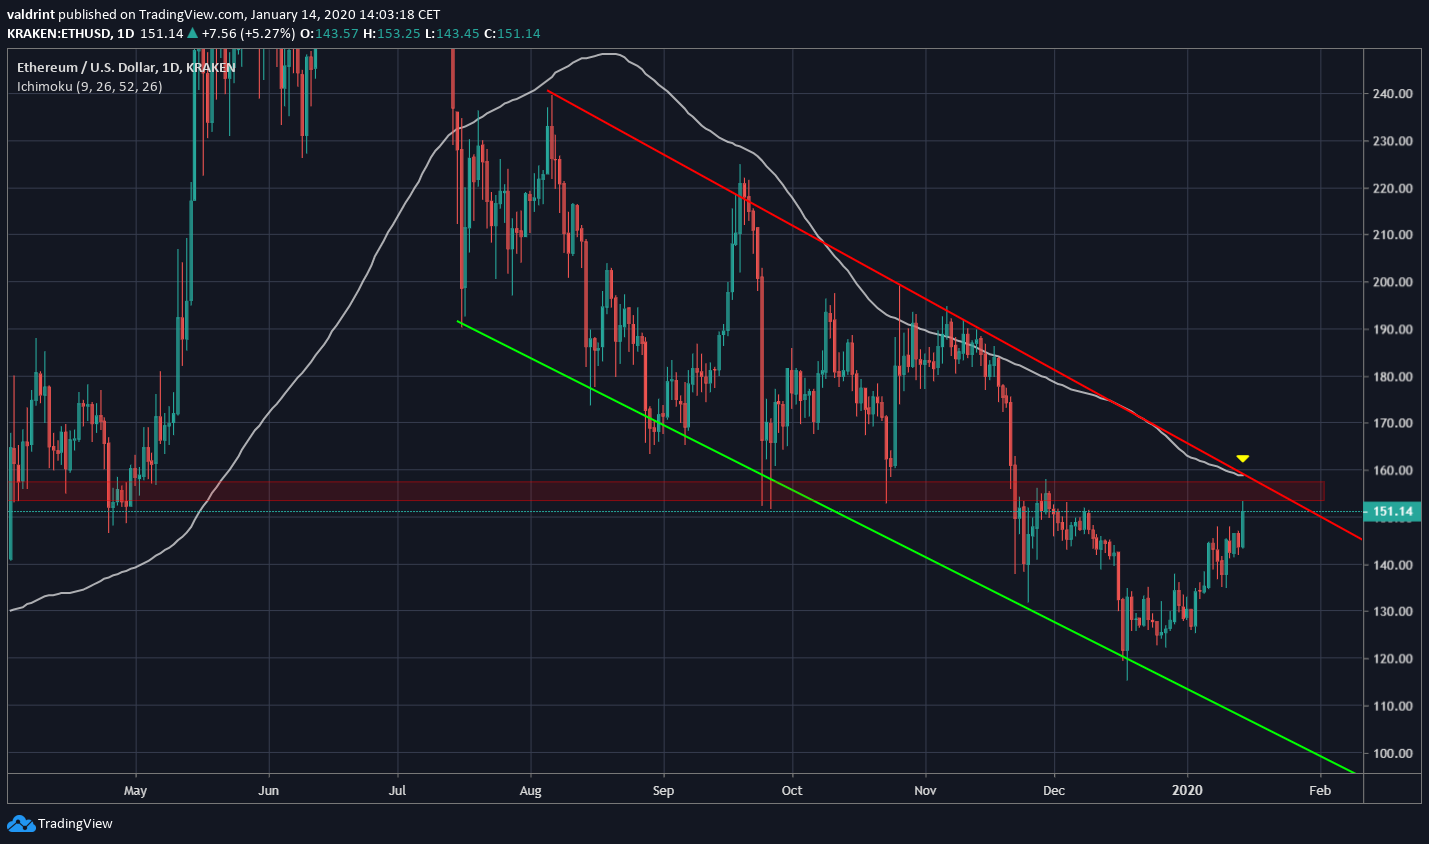 Ethereum Descending Channel